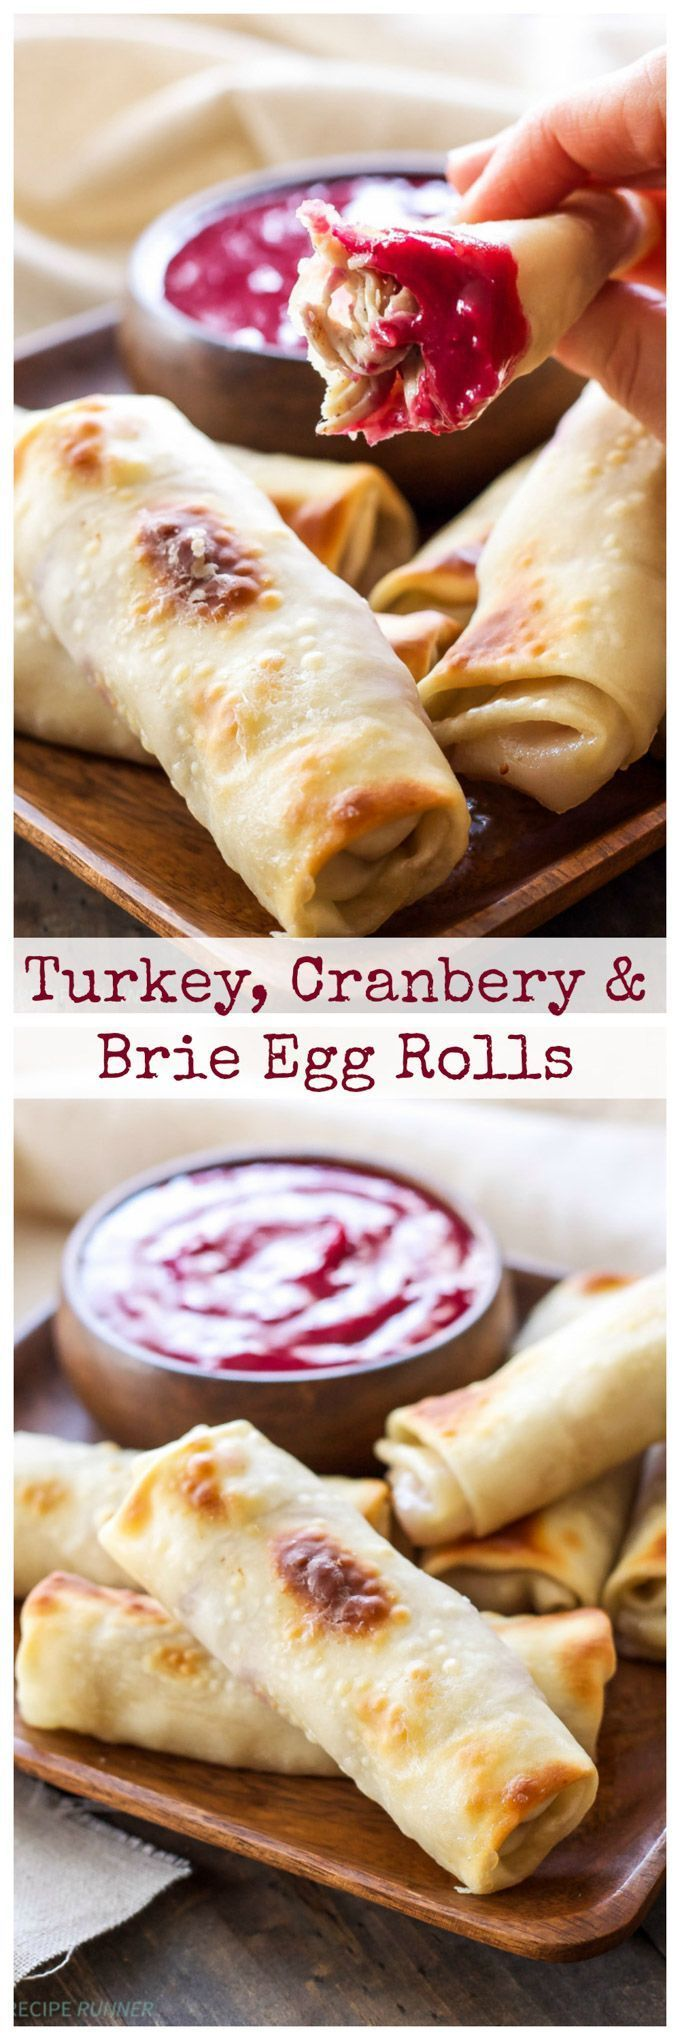 Turkey Cranberry and Brie Egg Rolls | Baked egg rolls stuffed with leftover Thanksgiving turkey, cranberry sauce and a slice of brie cheese!